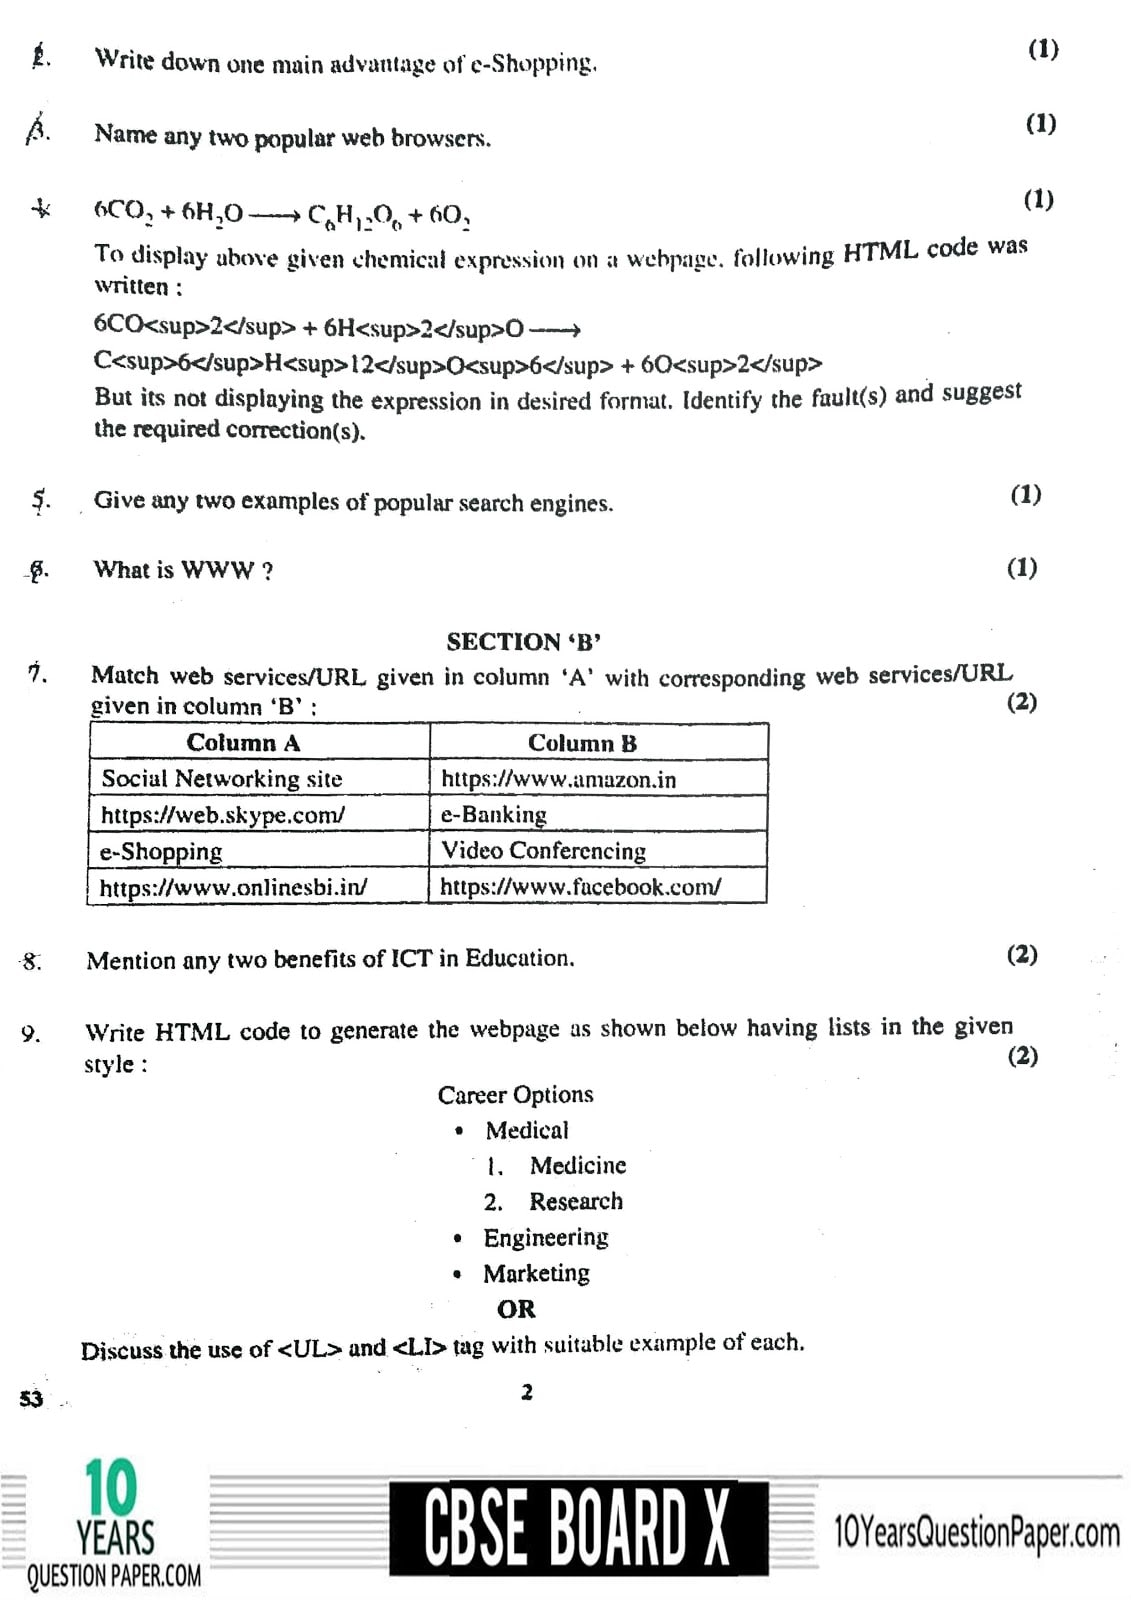 CBSE Class 10 Foundation of Information Technology 2018 Question Paper